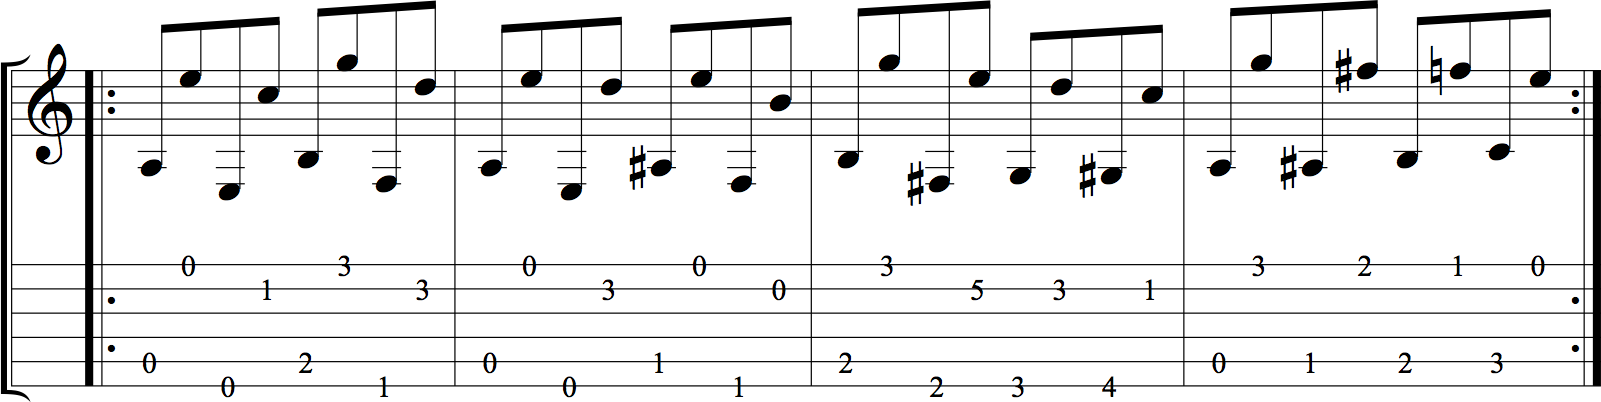 String-skipping exercise for skipping three strings at a time.